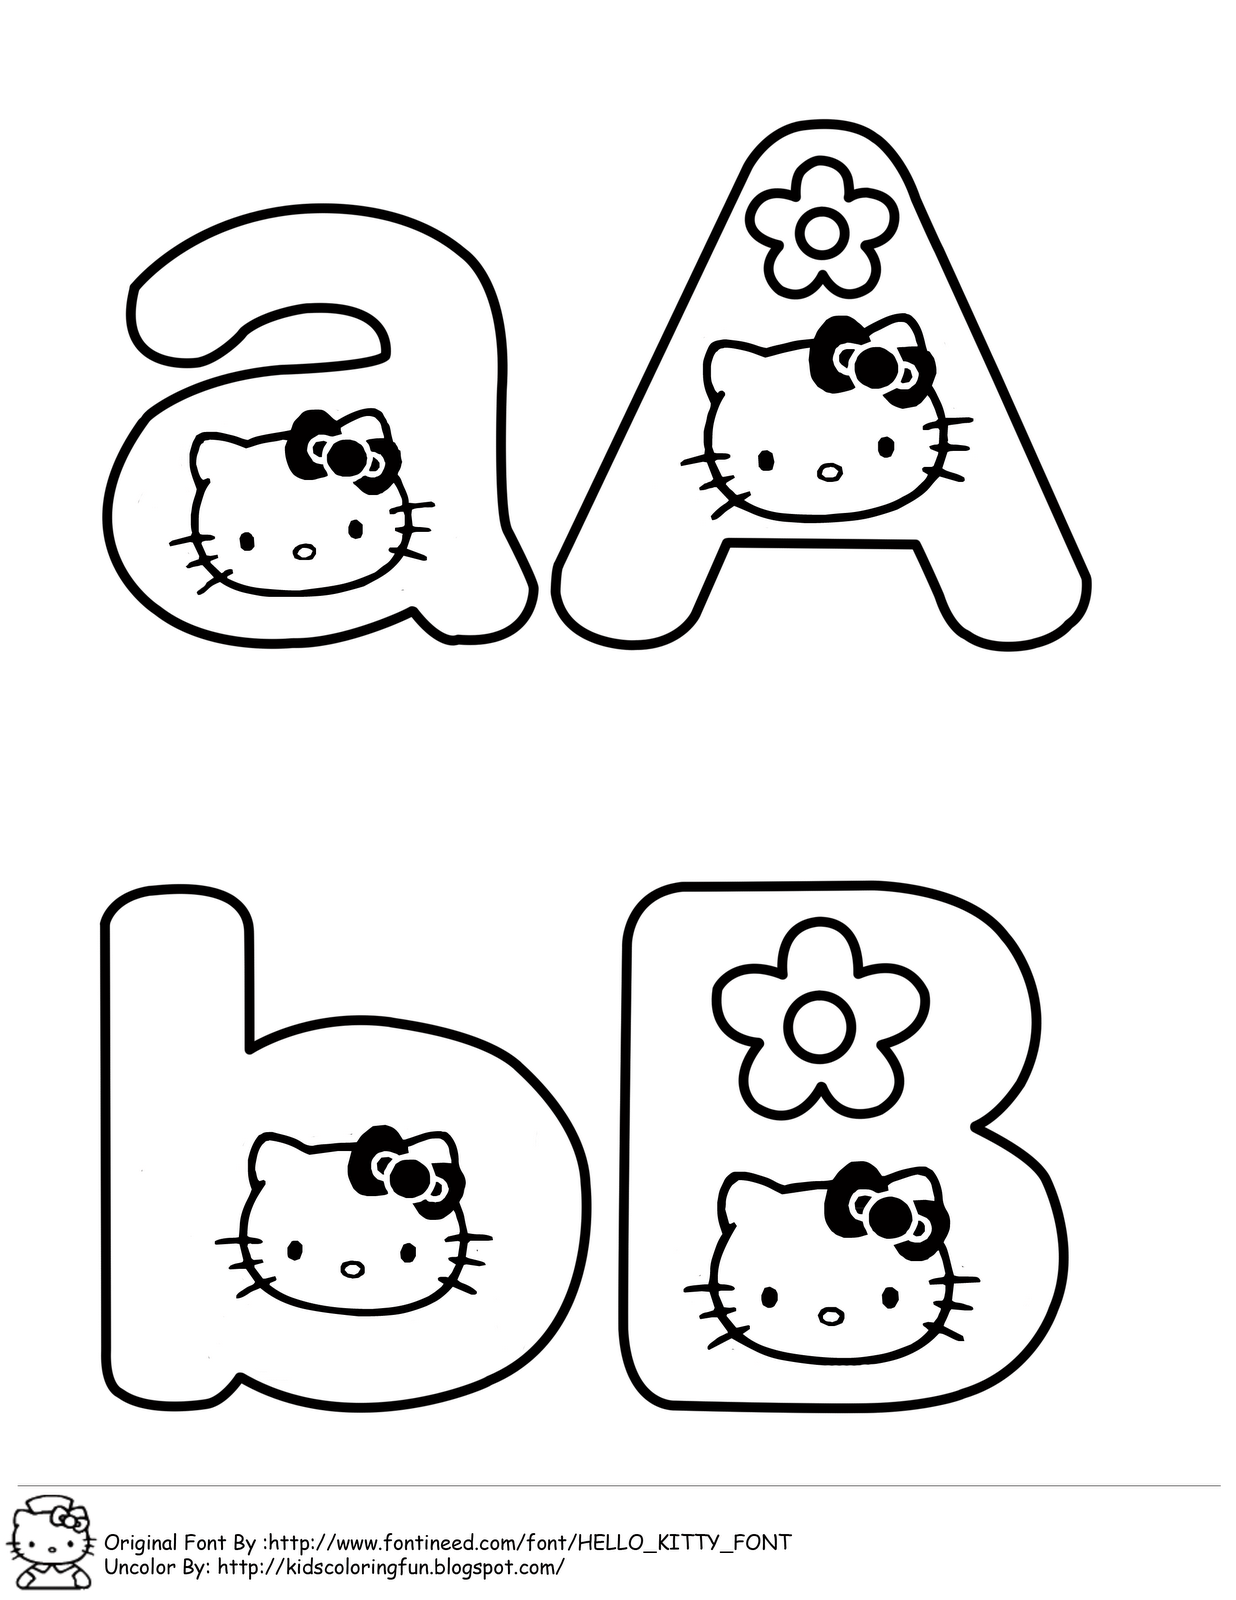 Learning Abc With Hello Kitty